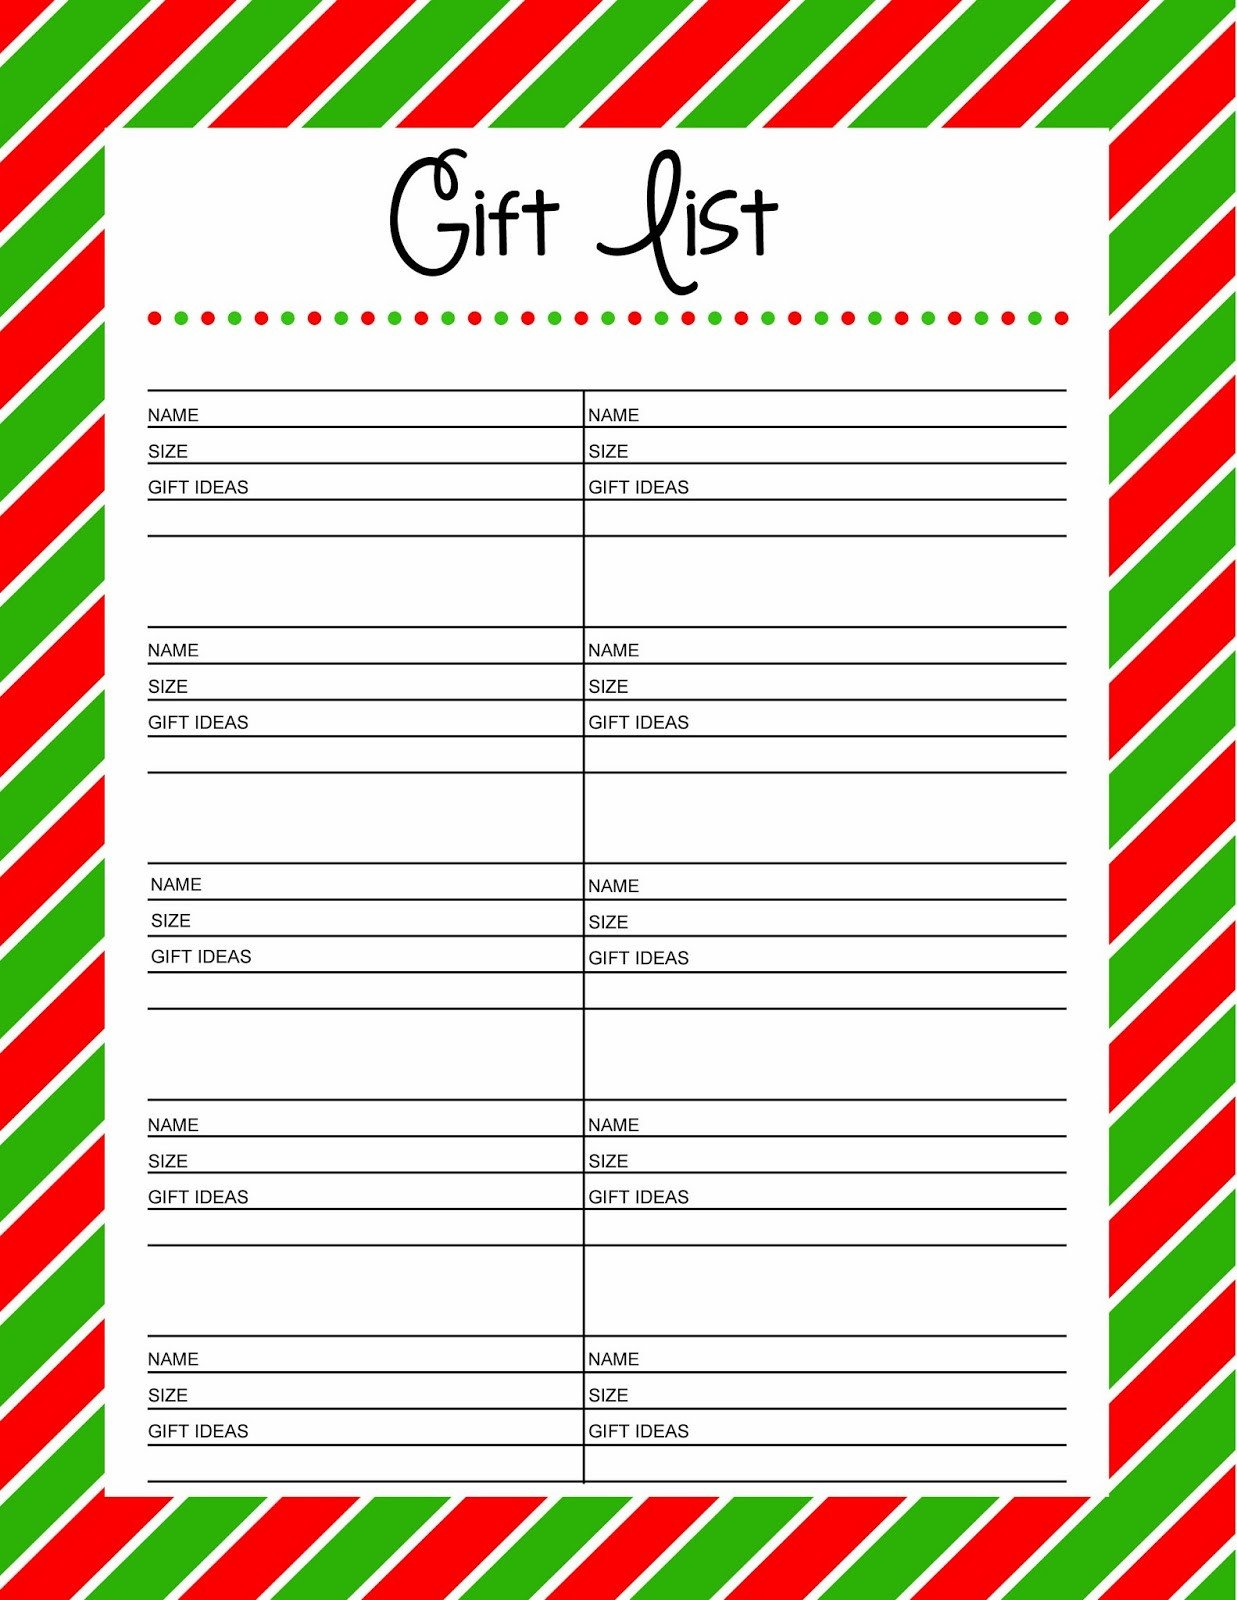 Christmas Gift List Template Free Printable Gift List 25 Days to An organized